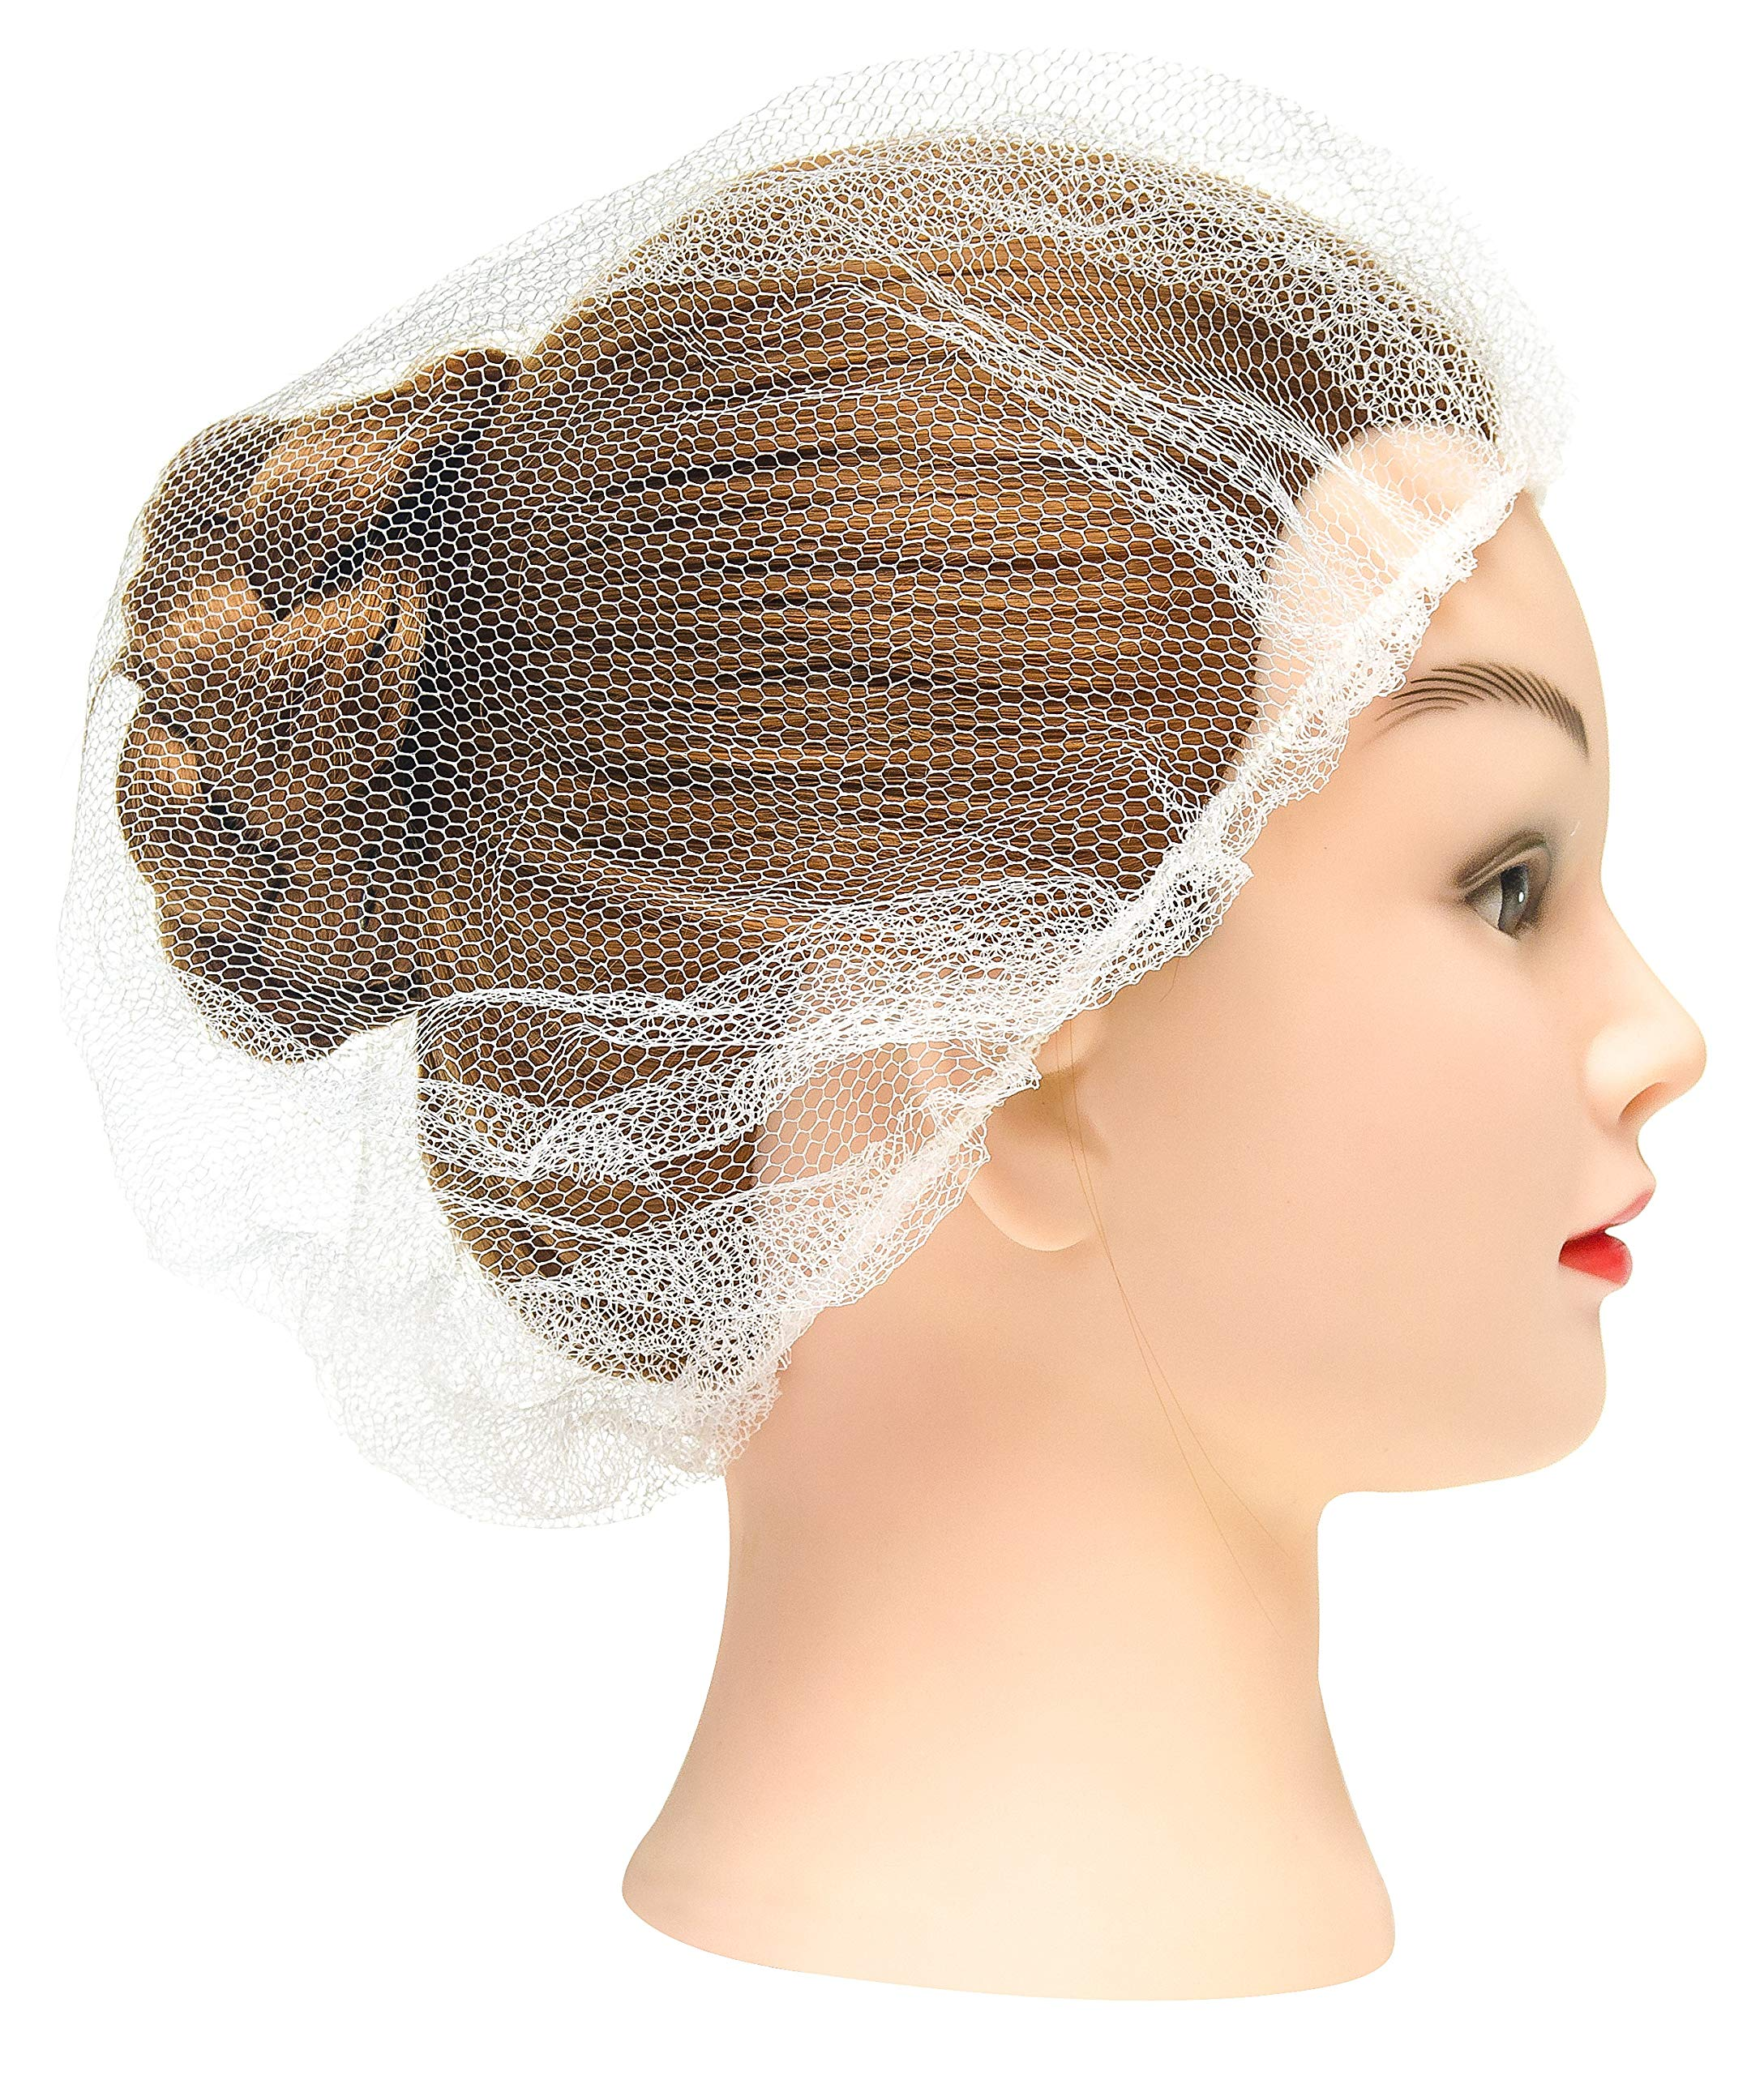 100 Pack White Nylon Hairnets 28'' size. Disposable white hairnets. Protective Hair Nets with Elastic Edge Mesh. Stretchable Hairnet Caps for Non-Medical Use. Lightweight, Breathable. Wholesale price.